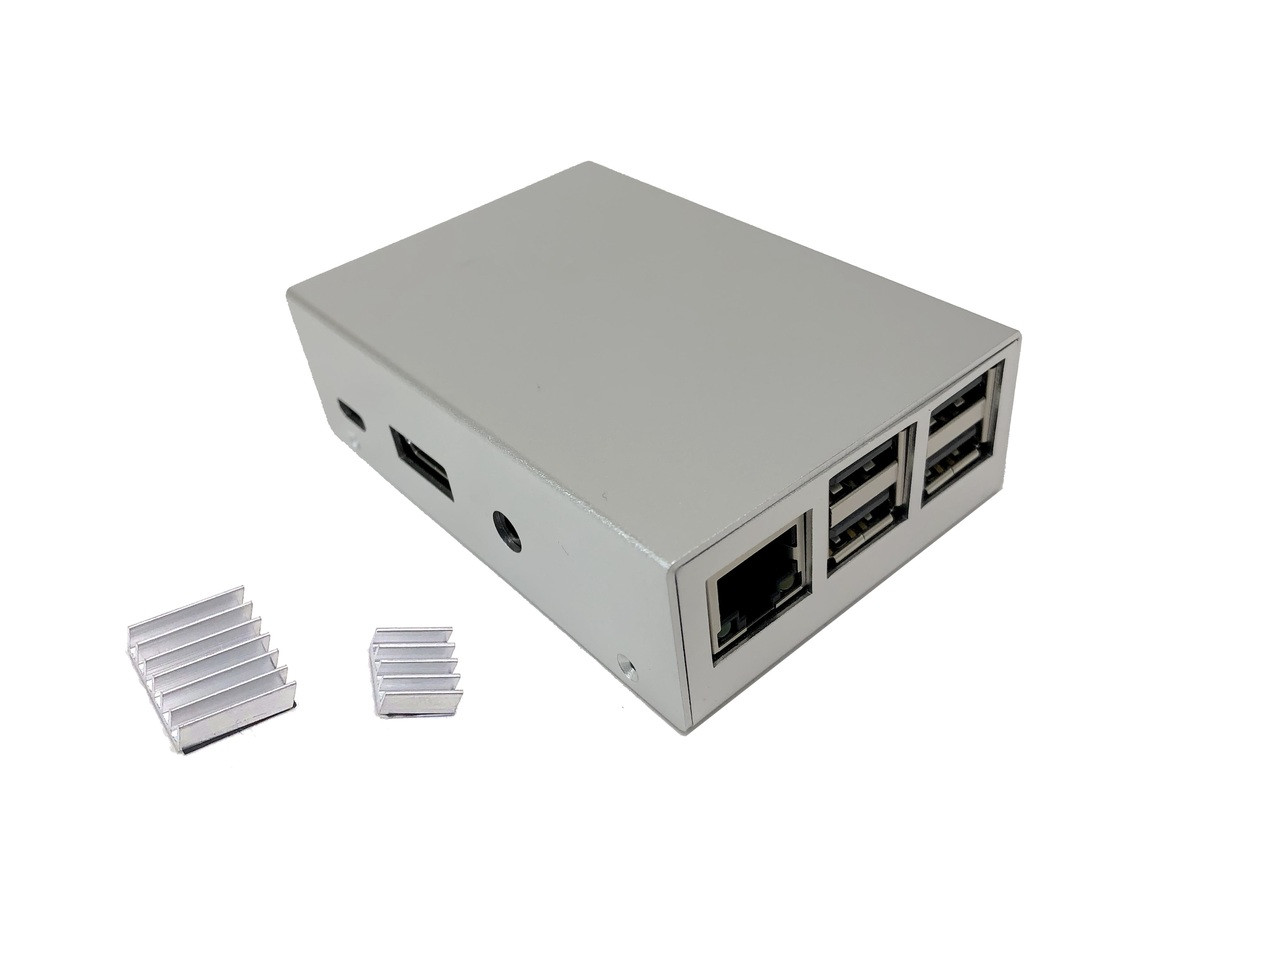 Aluminum Raspberry Pi 3 Model B/B+ Case (Silver)